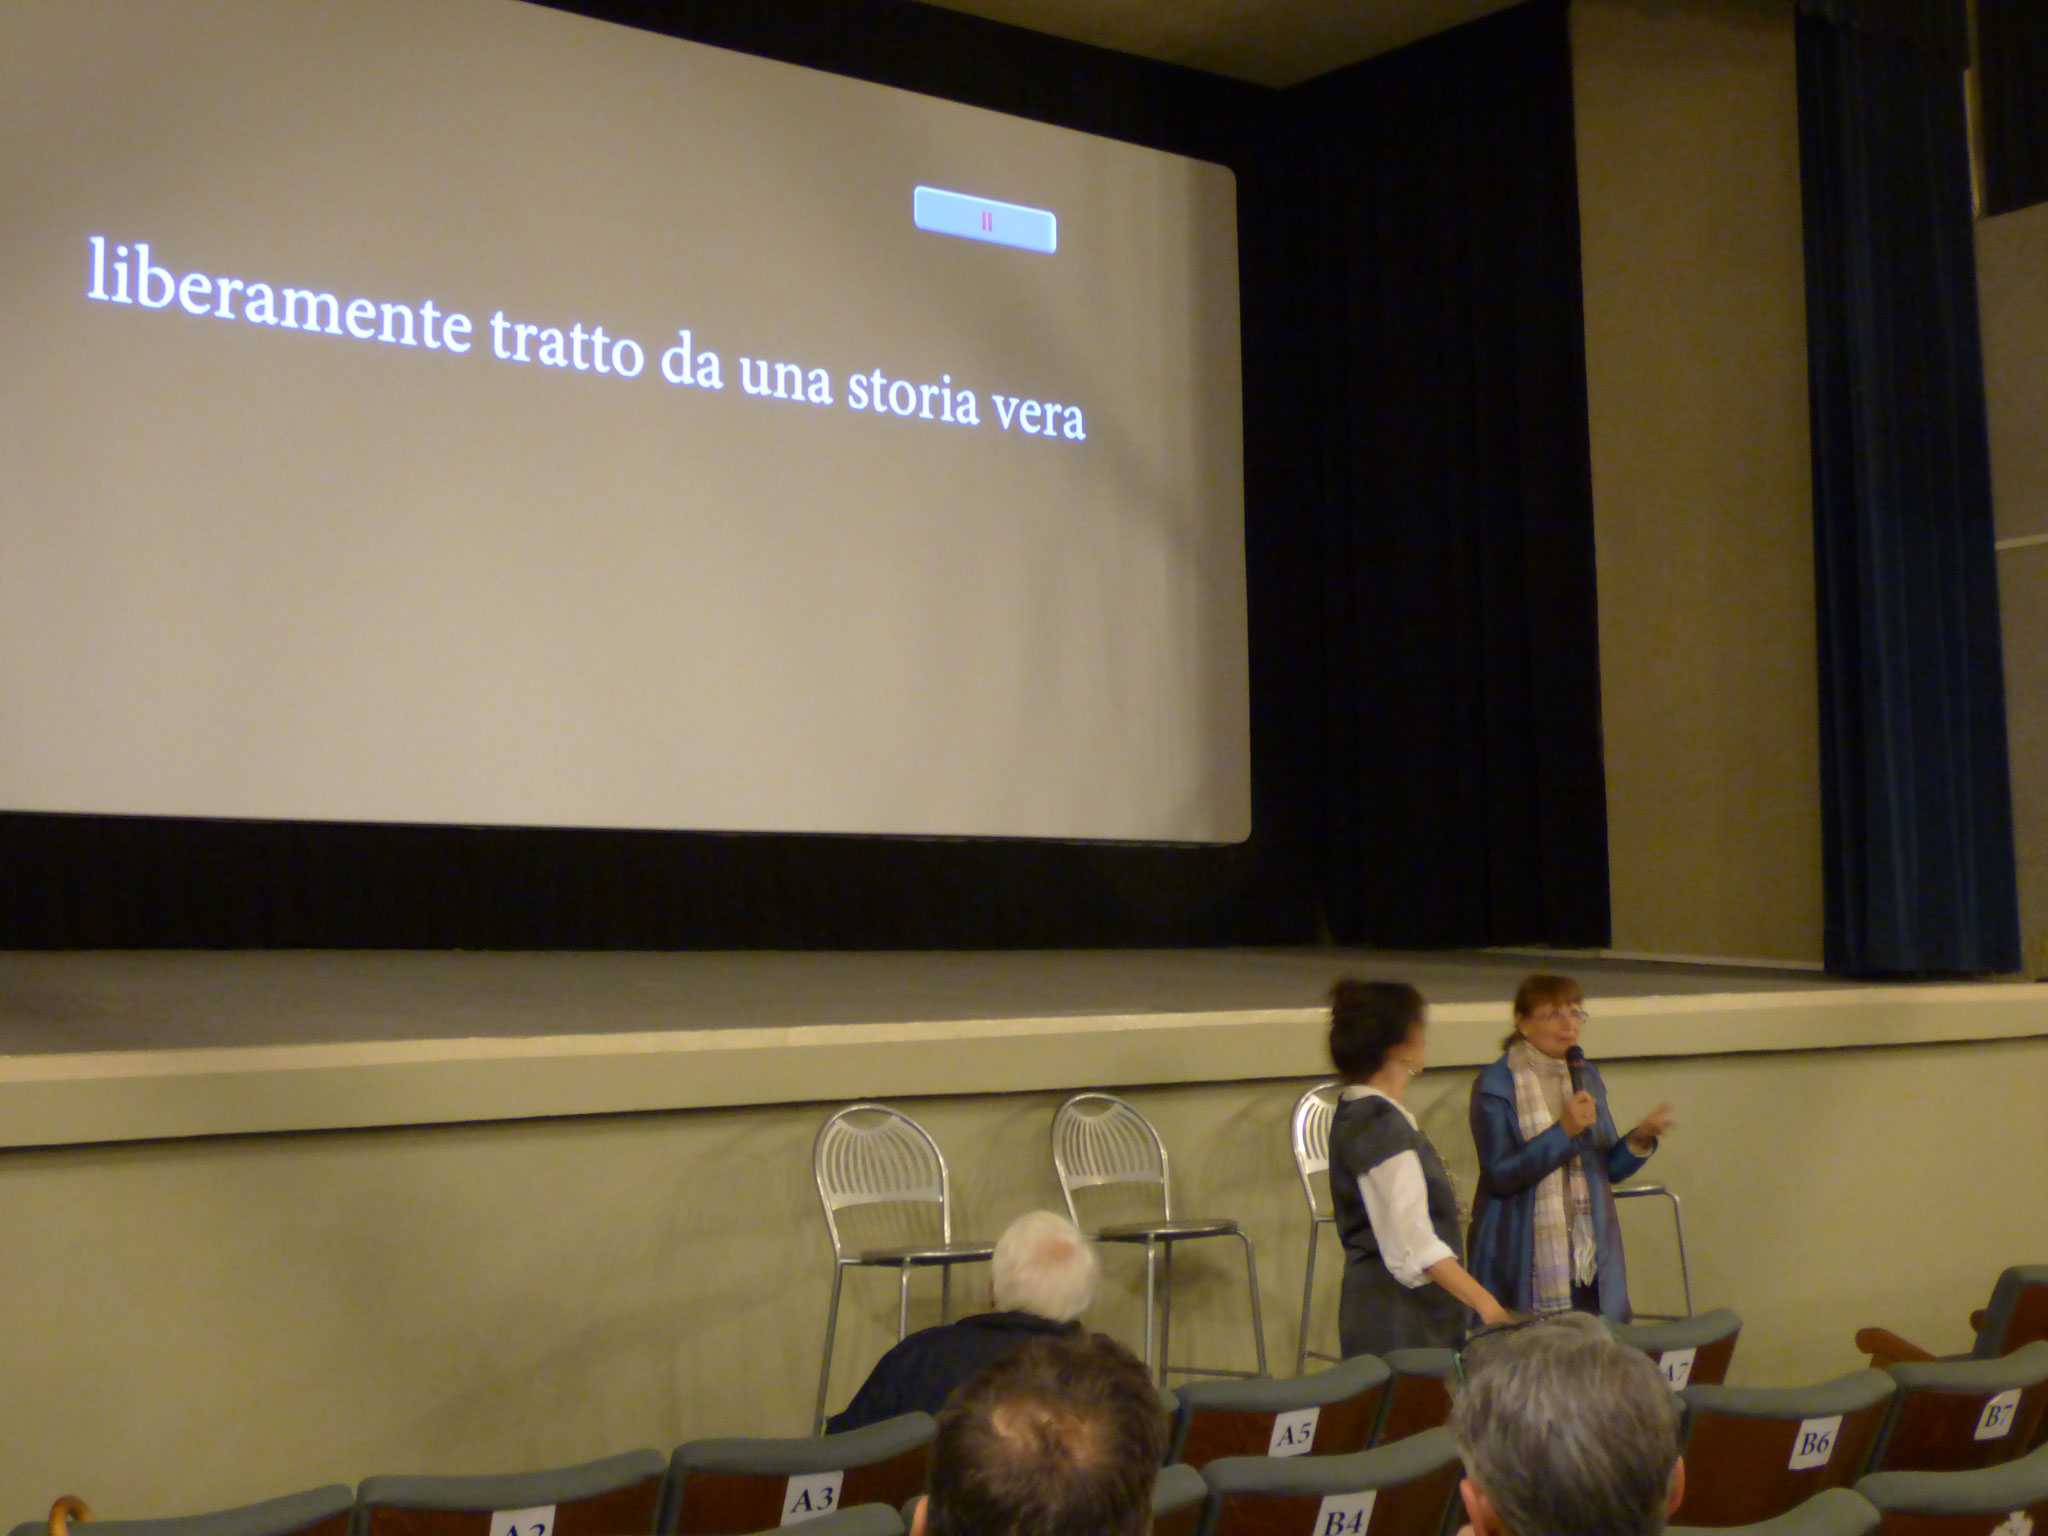 L'ULTIMA INTERVISTA #LultimaIntervista al Cinema Le Grazie Bobbio <3 SABATO 5 maggio: ore 18,00 - ENTRATA LIBERA presenti in sala la Regista e tutti gli attori - seguirà dibattito